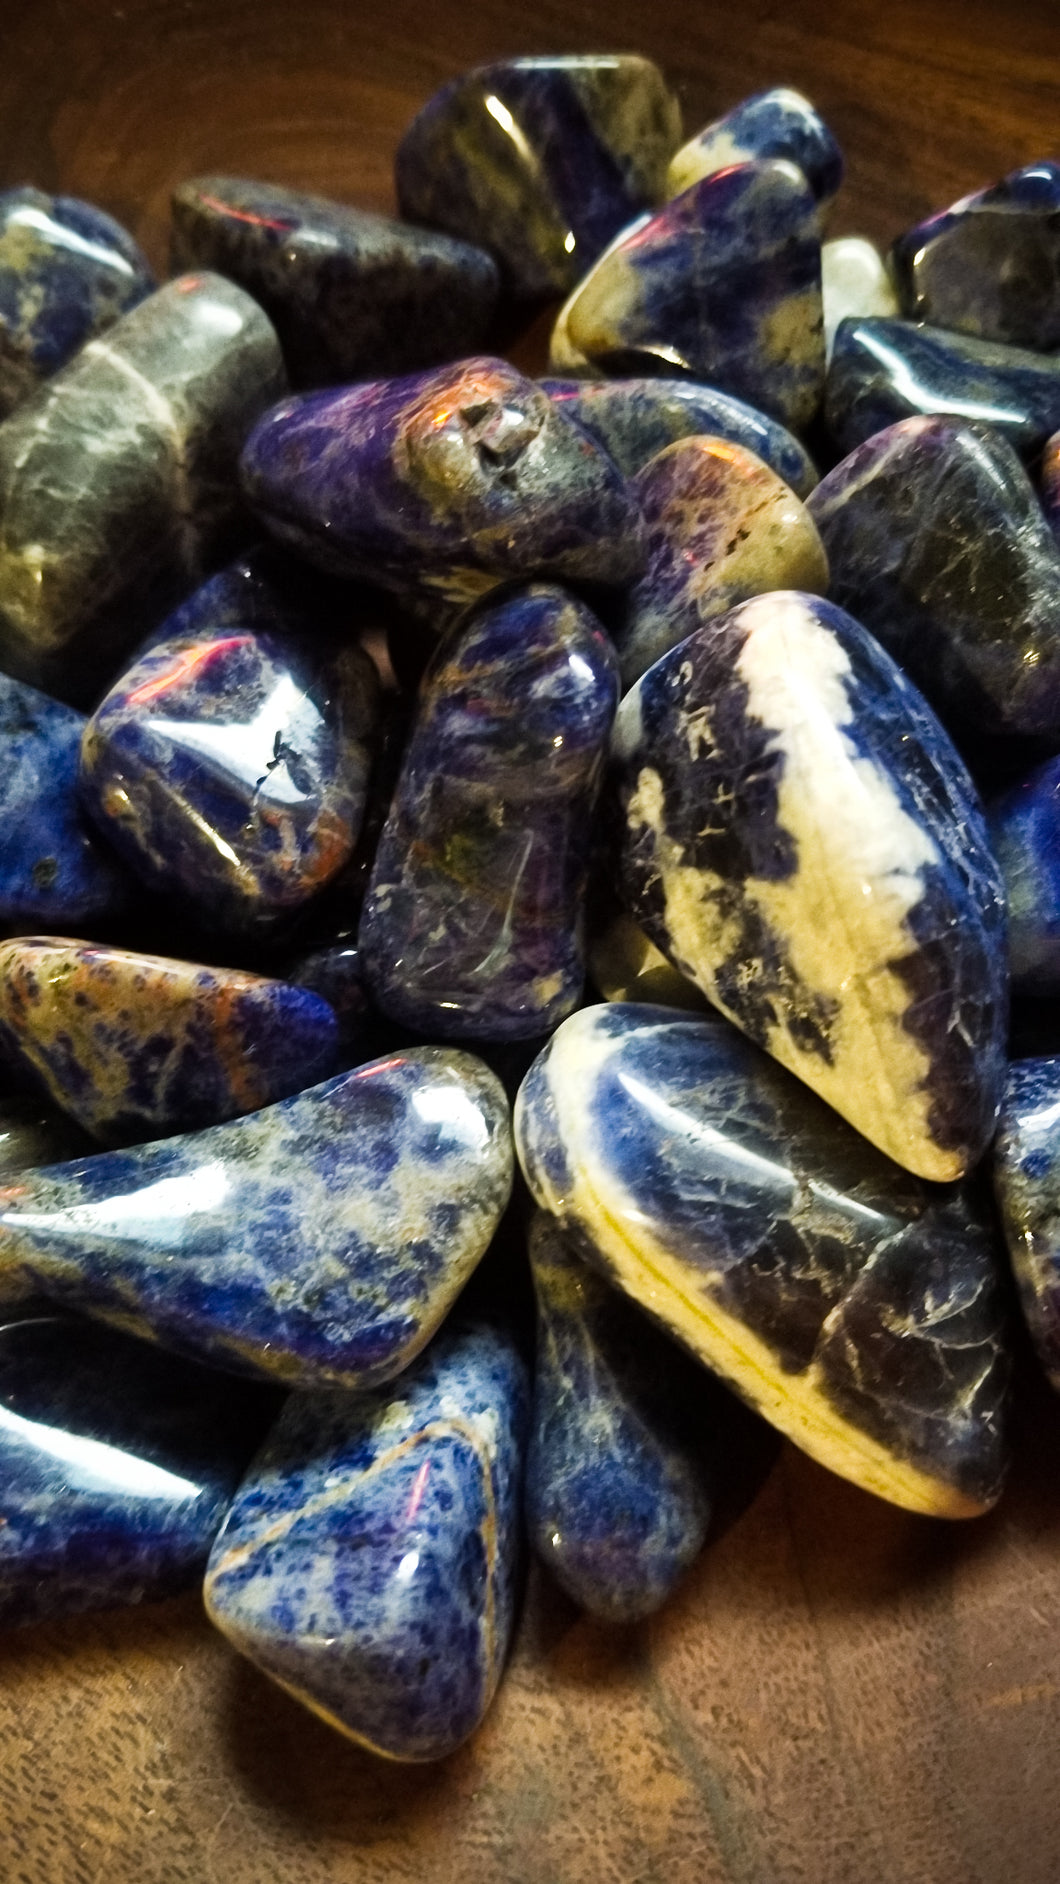 Sodalite Tumbled Crystal || Throat Chakra || Speak Your Truth